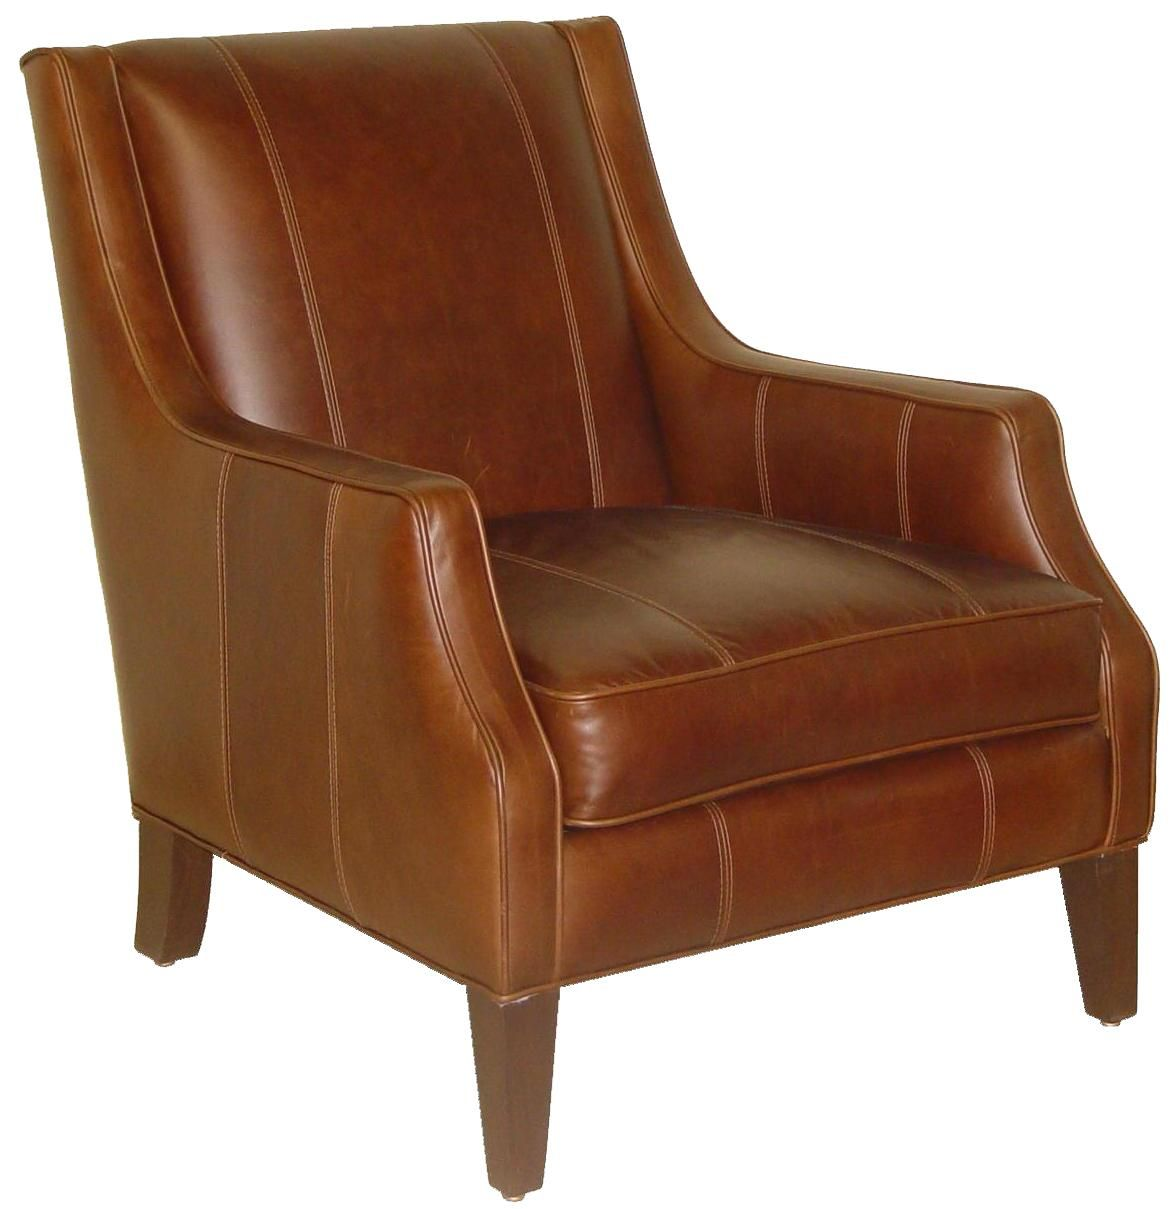 Best Accentuates Miles Leather Accent Chair By Jonathan Louis 400 x 300